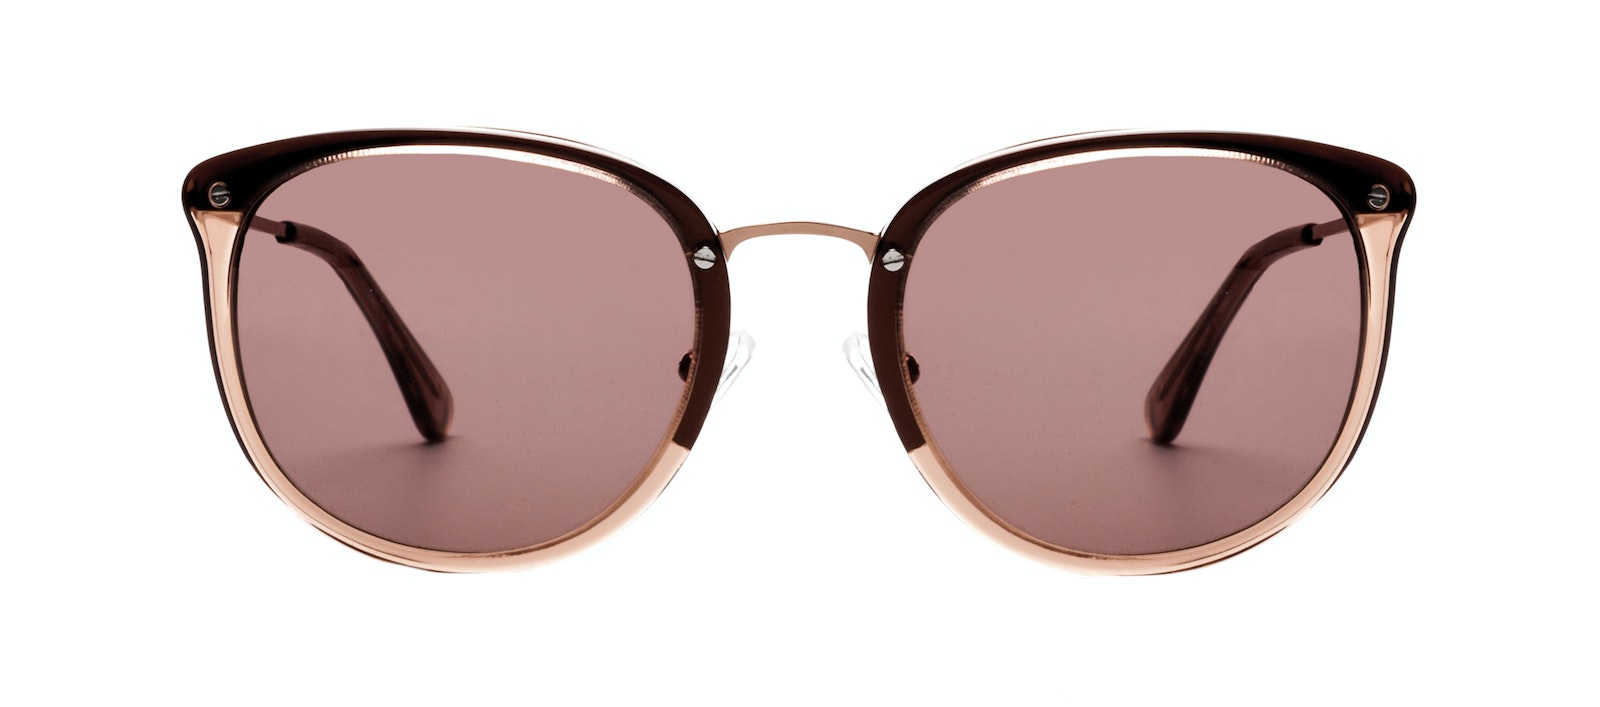 Affordable Fashion Glasses Square Round Sunglasses Women Amaze Rose Front